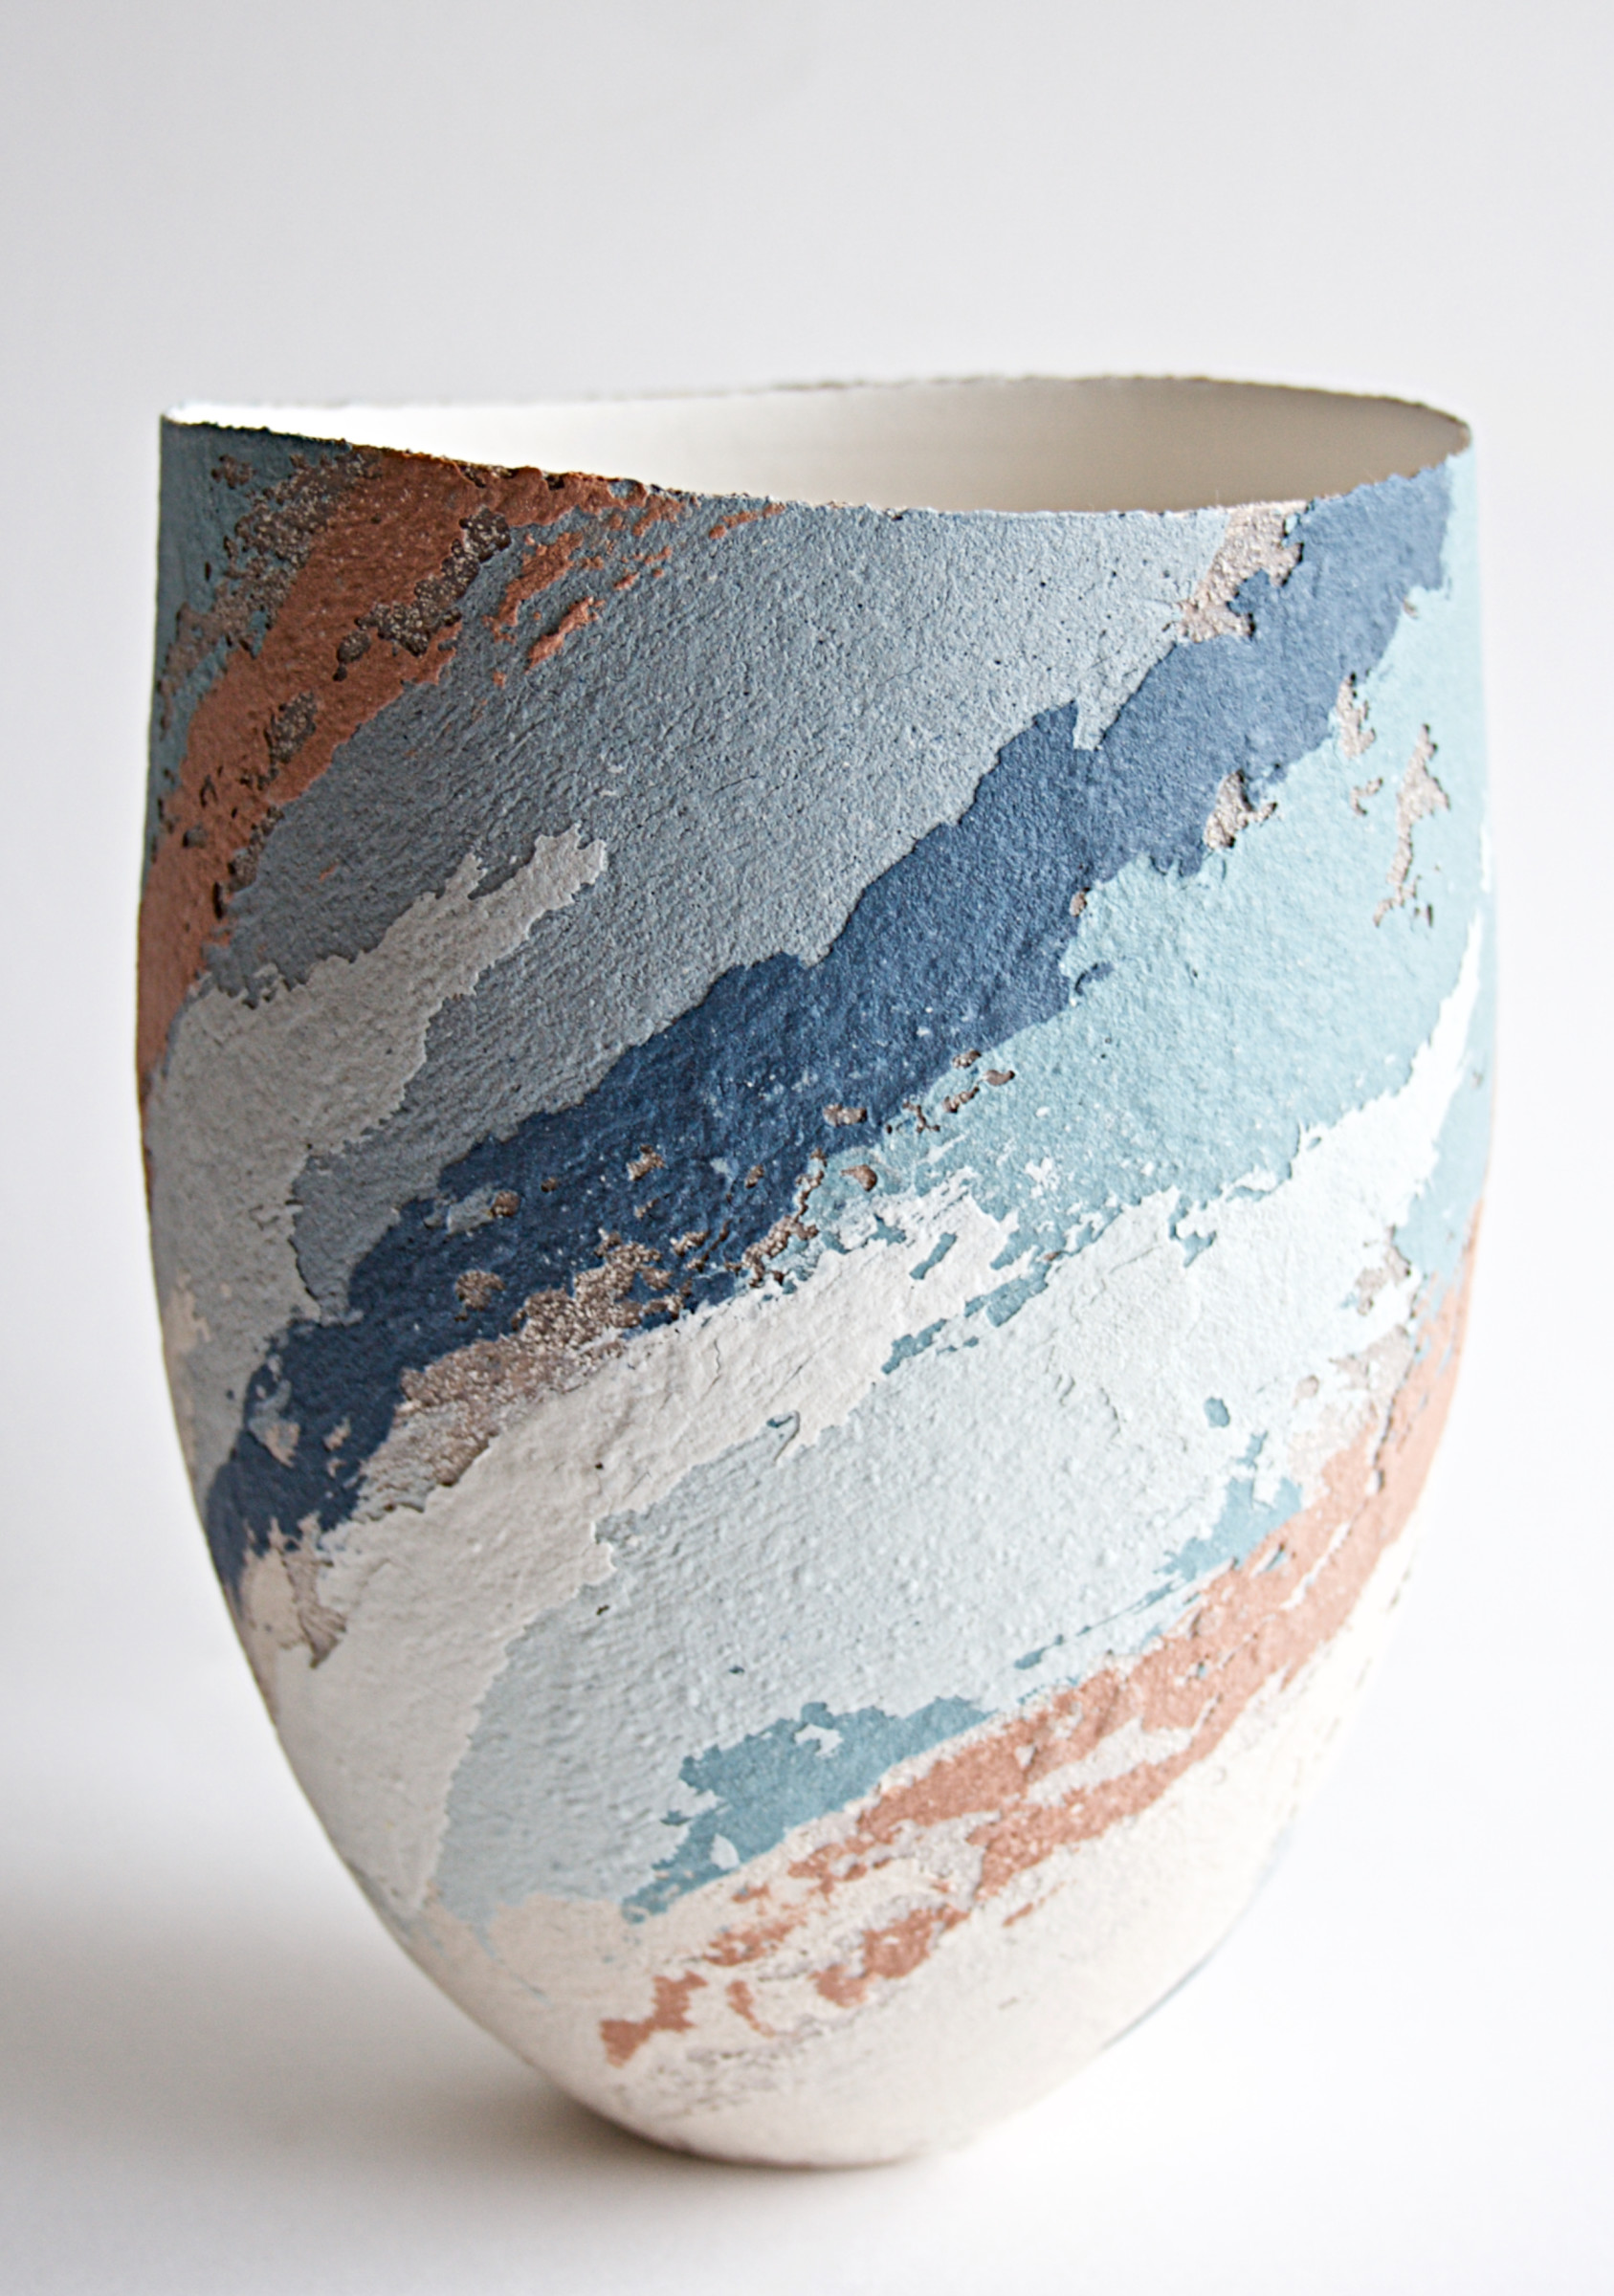 "<span class=""link fancybox-details-link""><a href=""/artists/79-clare-conrad/works/6925-clare-conrad-vessel-scooped-rim-2020/"">View Detail Page</a></span><div class=""artist""><strong>Clare Conrad</strong></div> <div class=""title""><em>Vessel, scooped rim</em>, 2020</div> <div class=""medium"">Stoneware</div> <div class=""dimensions"">h. 20 cm</div><div class=""price"">£330.00</div><div class=""copyright_line"">Copyright The Artist</div>"